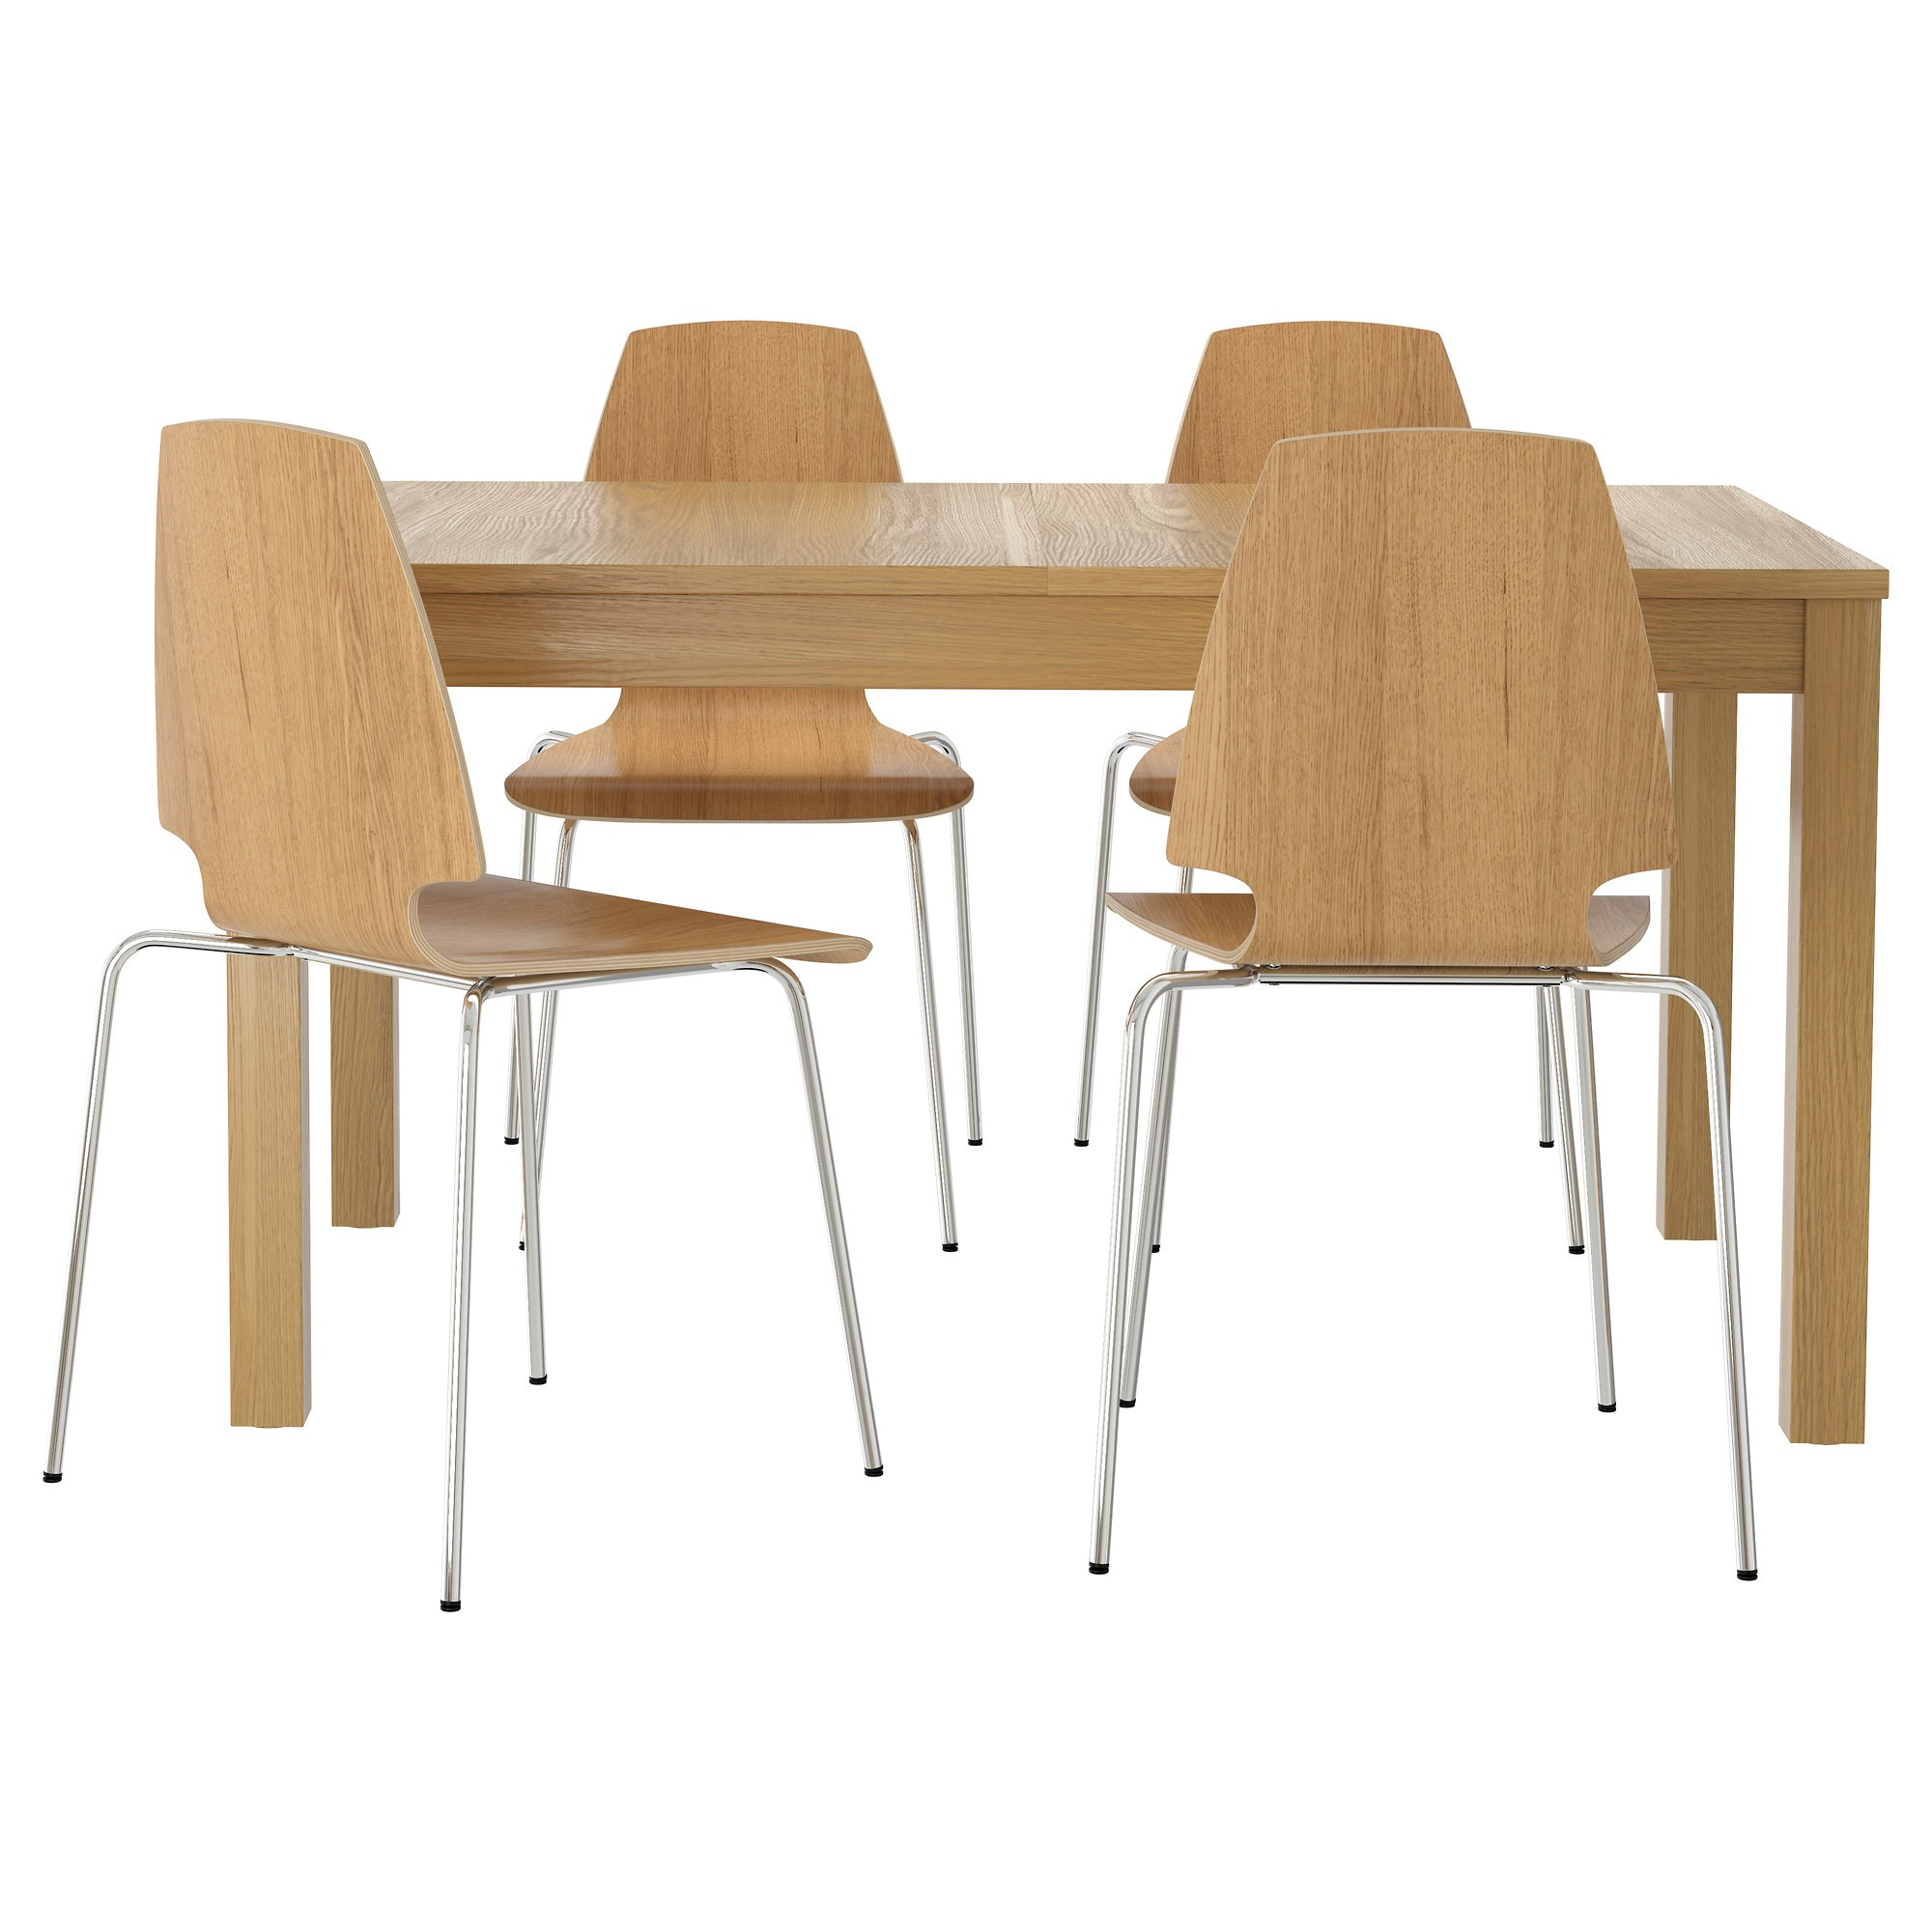 kitchen-chairs-ikea-photo-10